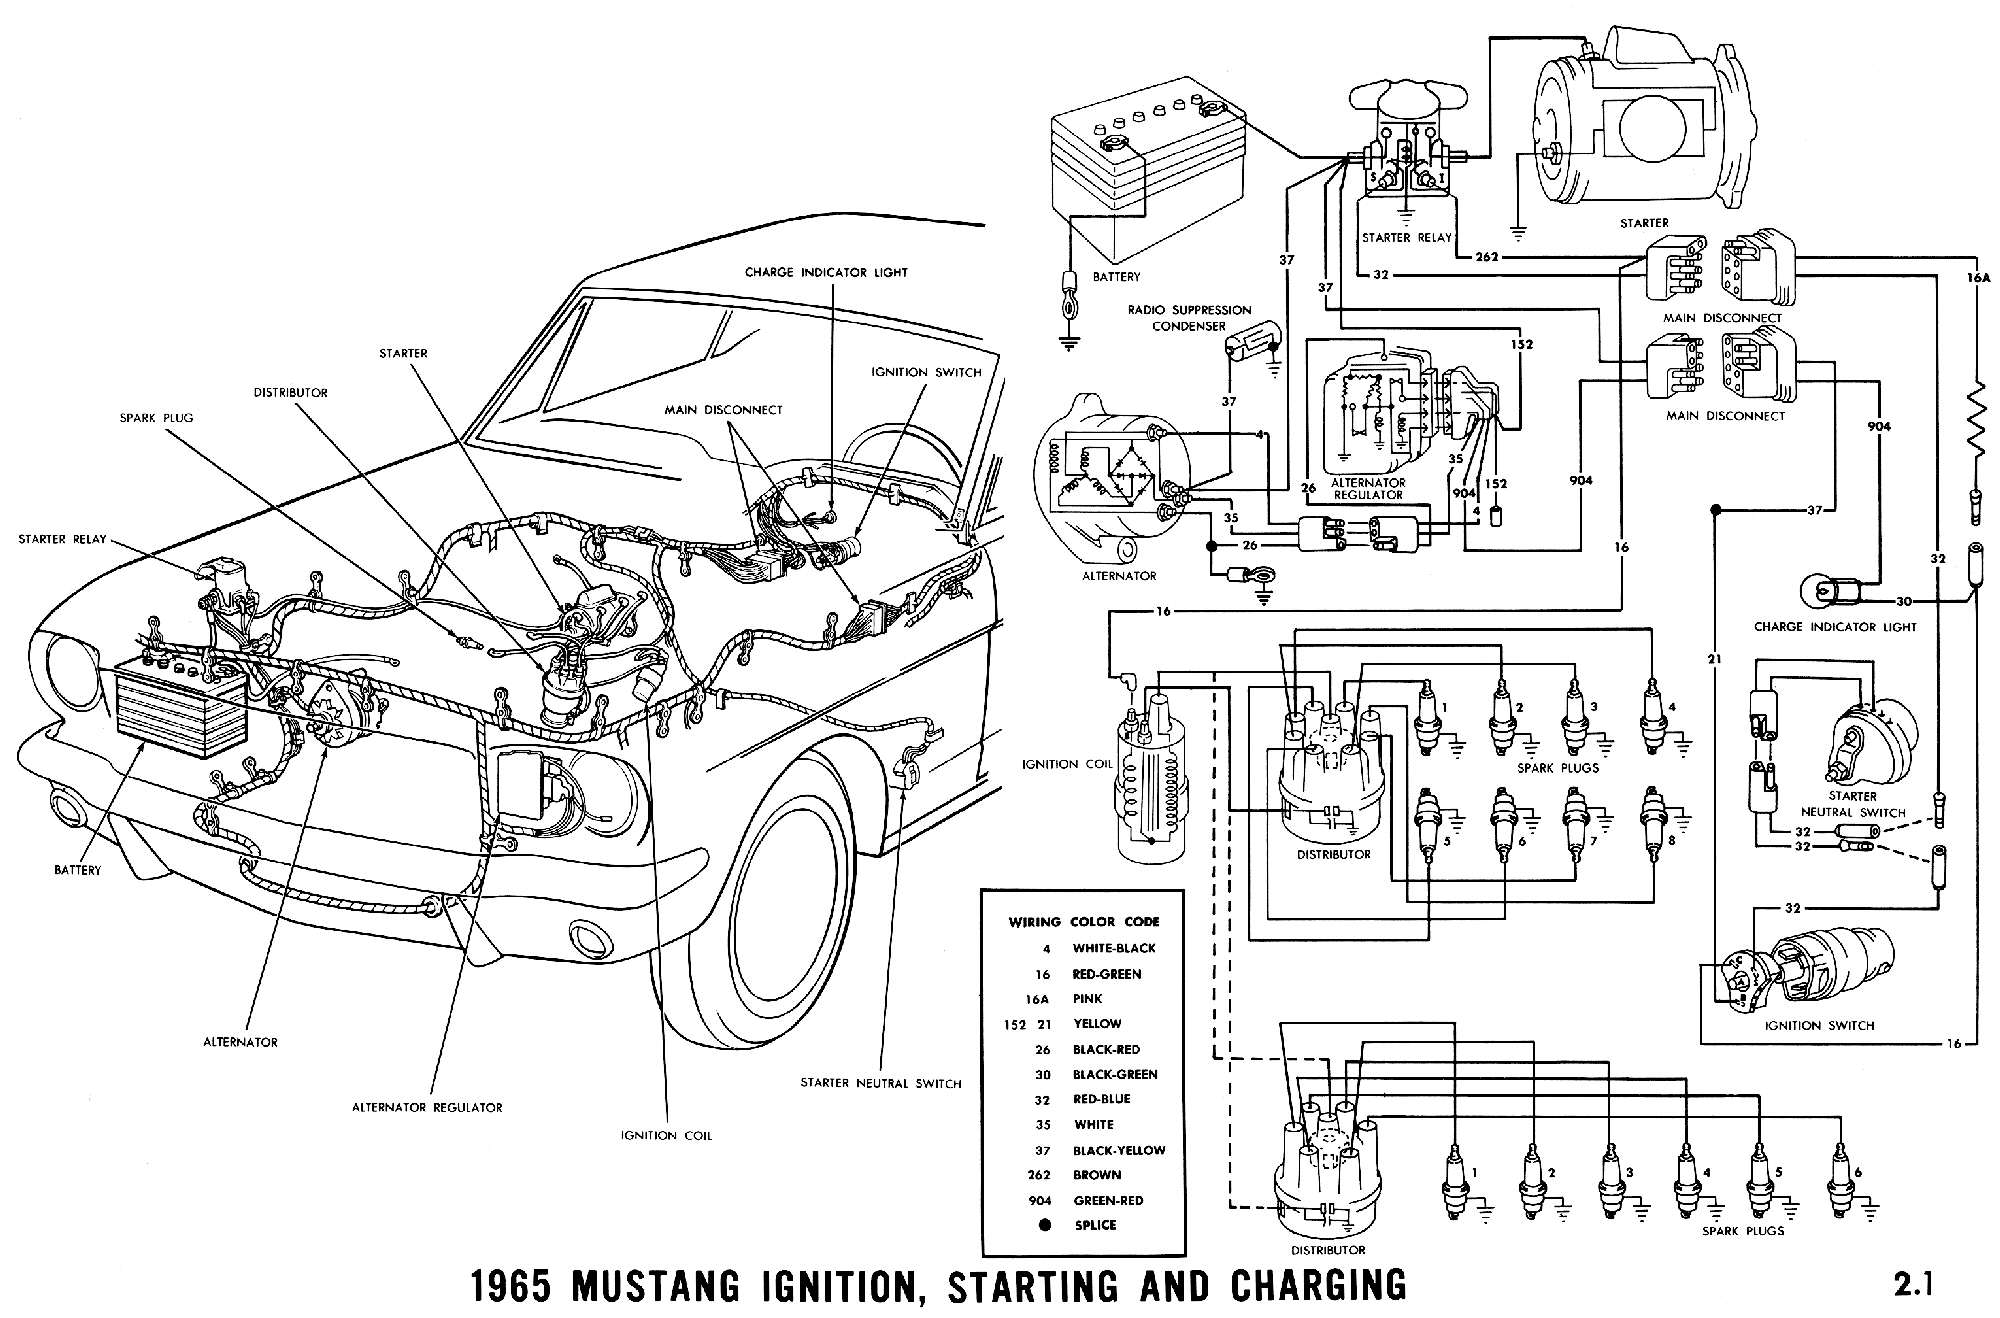 1965 Mustang Wiring Diagrams Average Joe Restoration Key Switch Emergency Lighting Free Download Ignition Starting And Charging Pictorial Schematic